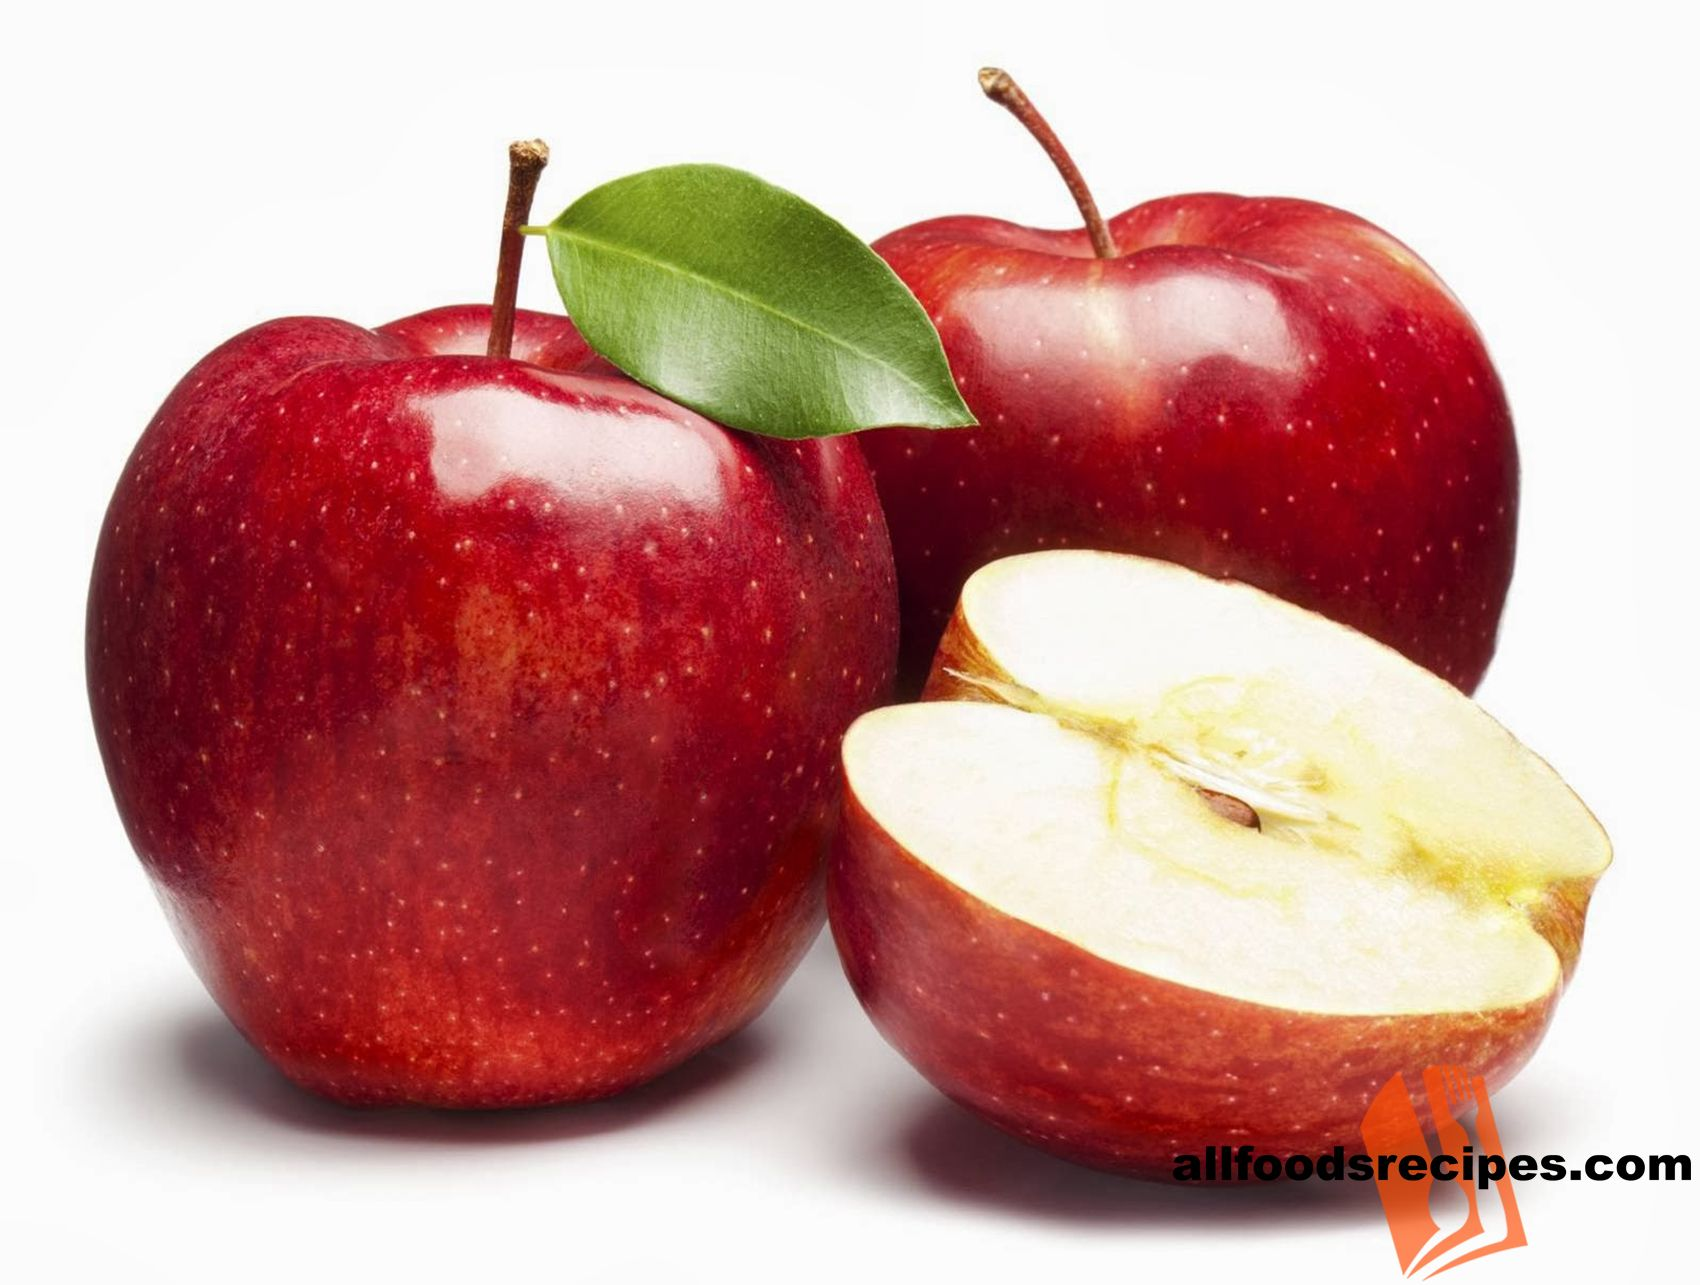 How apples are helpful for human beings? It's scientific name, health benefits and nutrition facts. Know complete details about apples.  FOOD FACTS : http://www.allfoodsrecipes.com/apples/